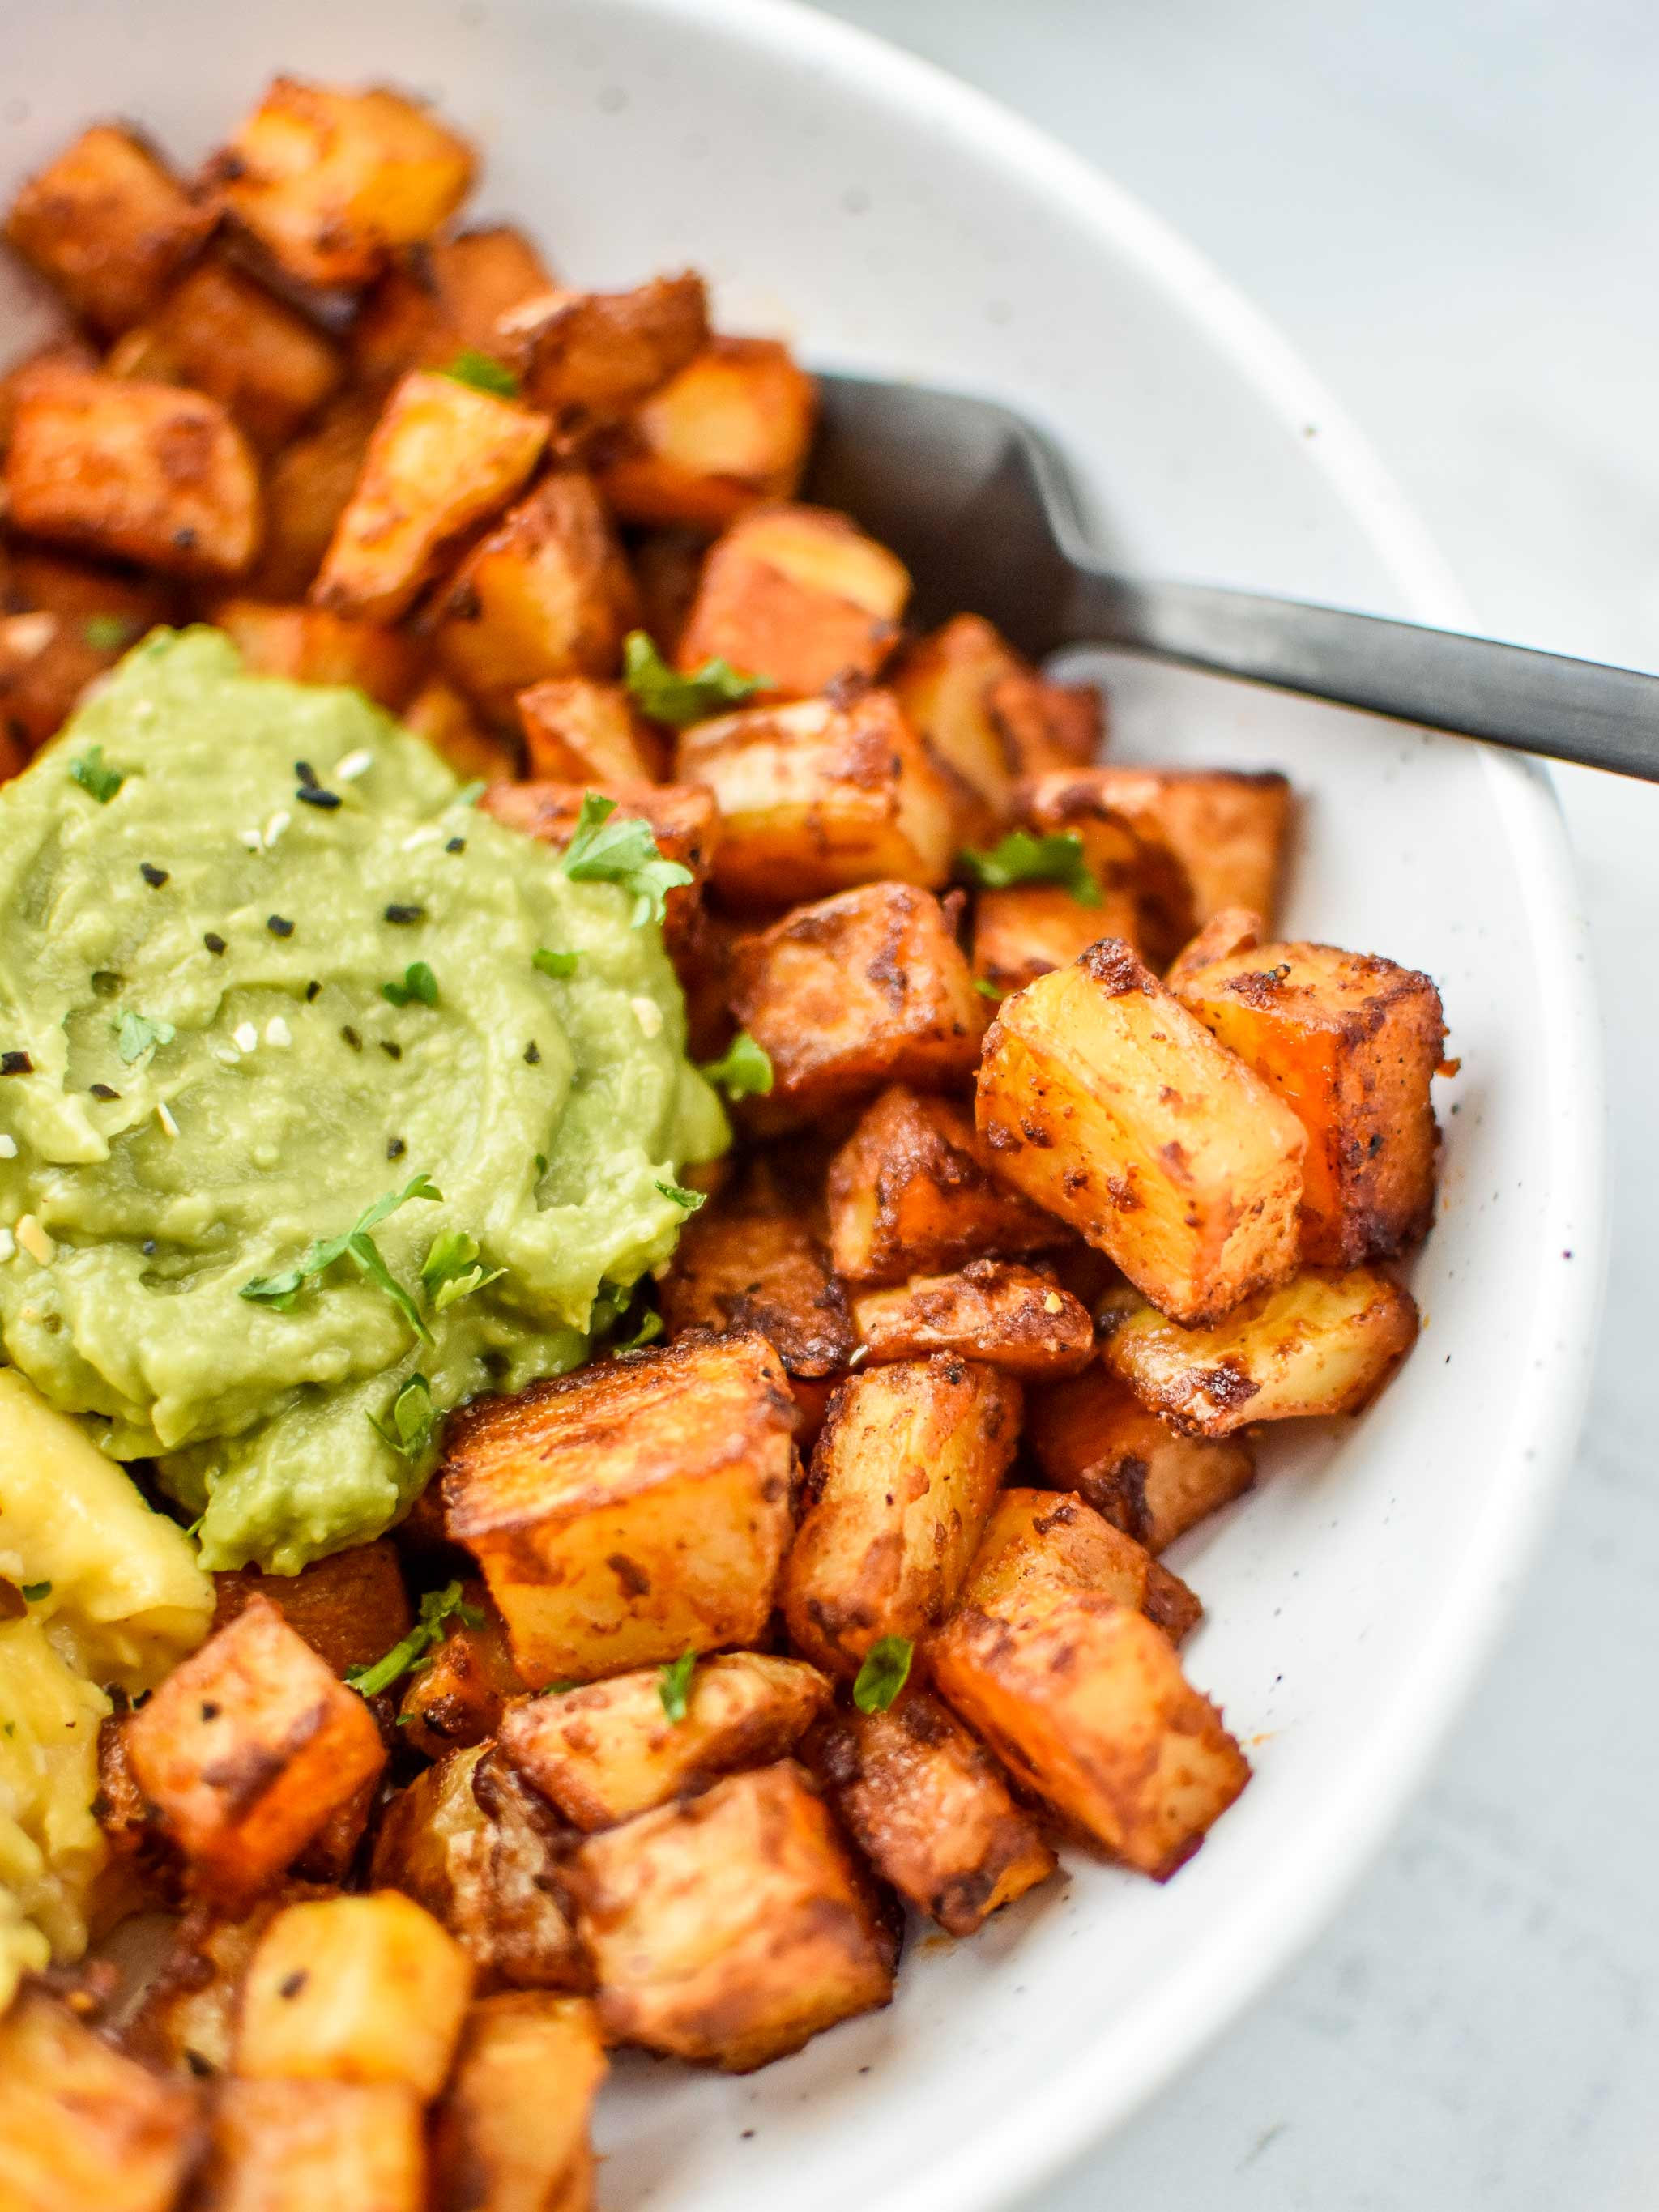 Basic oven breakfast potatoes with mashed avocado